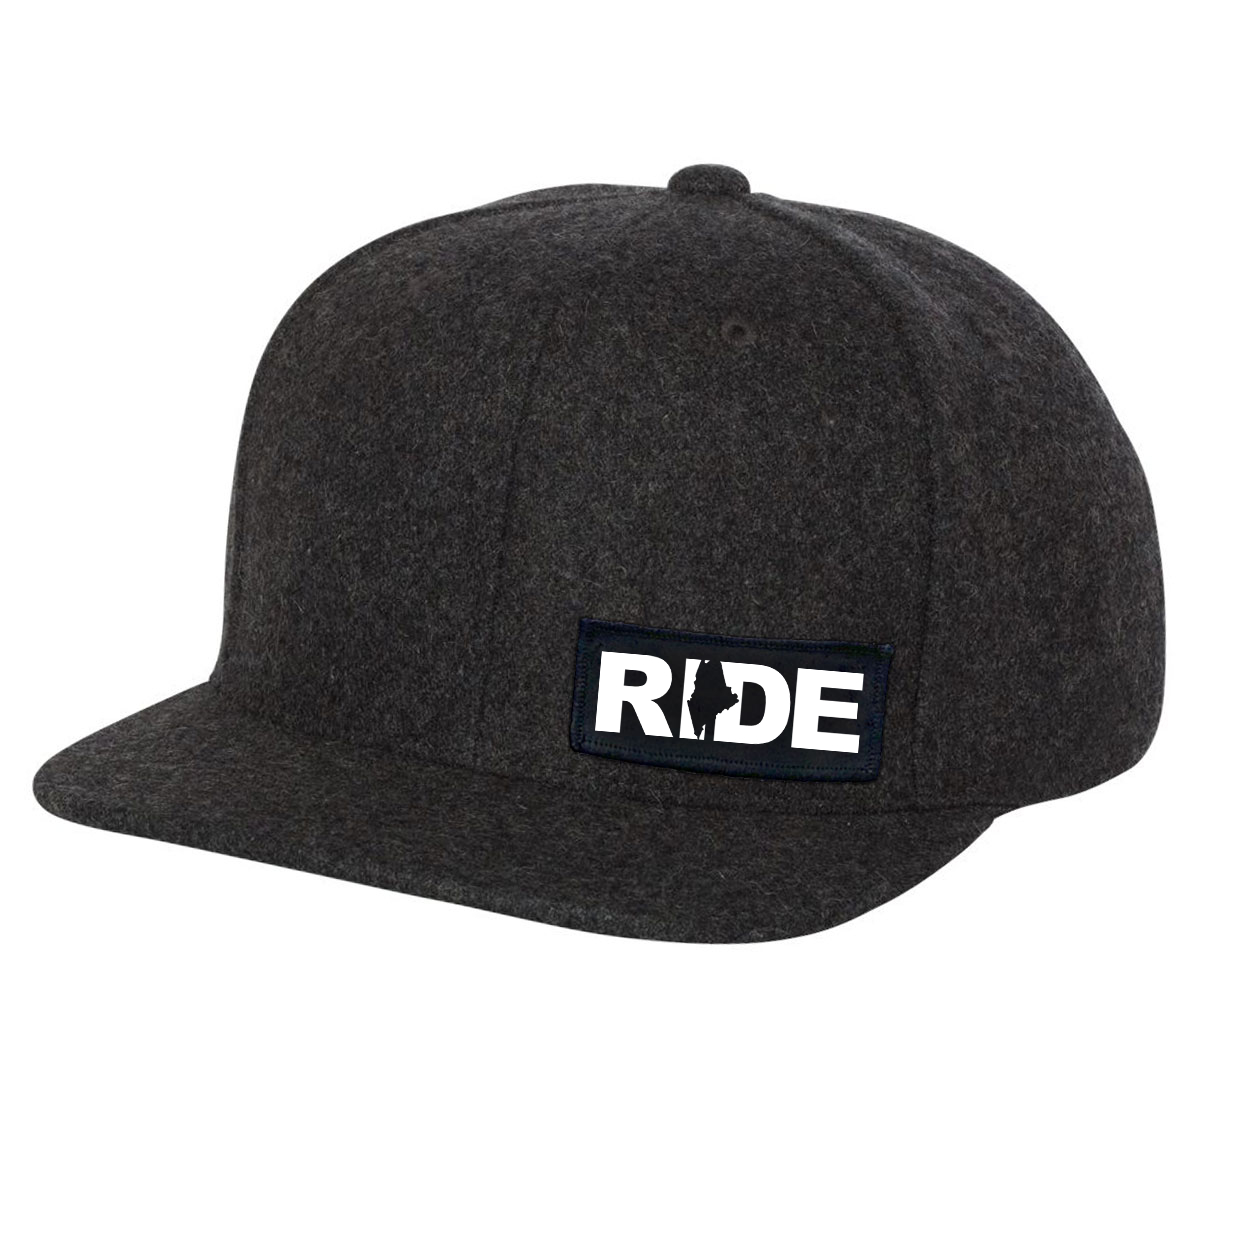 Ride Maine Night Out Woven Patch Flat Brim Snapback Hat Dark Heather Gray Wool (White Logo)